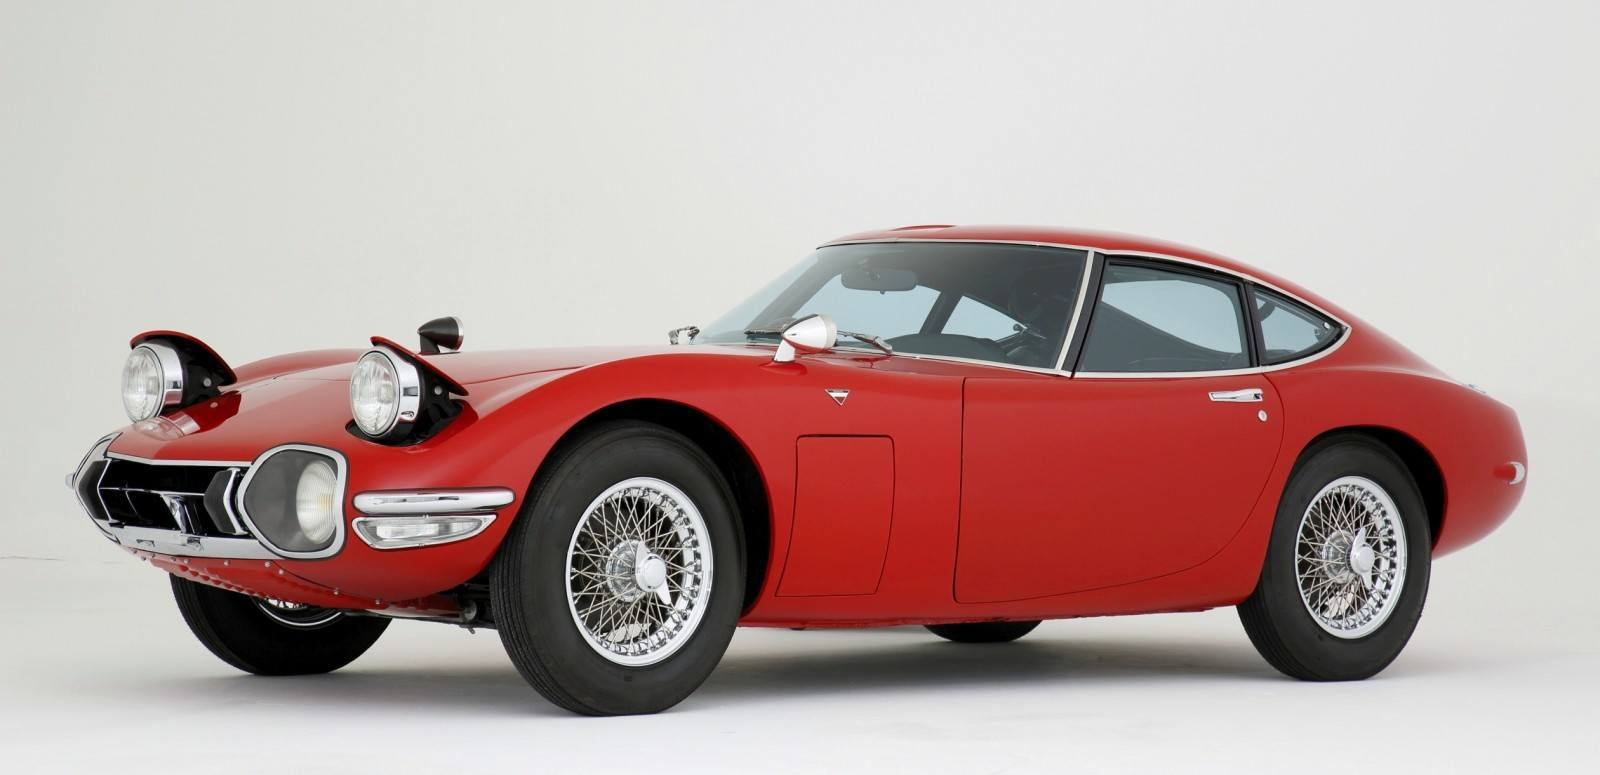 RM Auctions Monaco 2014 Highlights - 1968 Toyota 2000GT Joins Rare Million-Plus Japanese Car Club  26